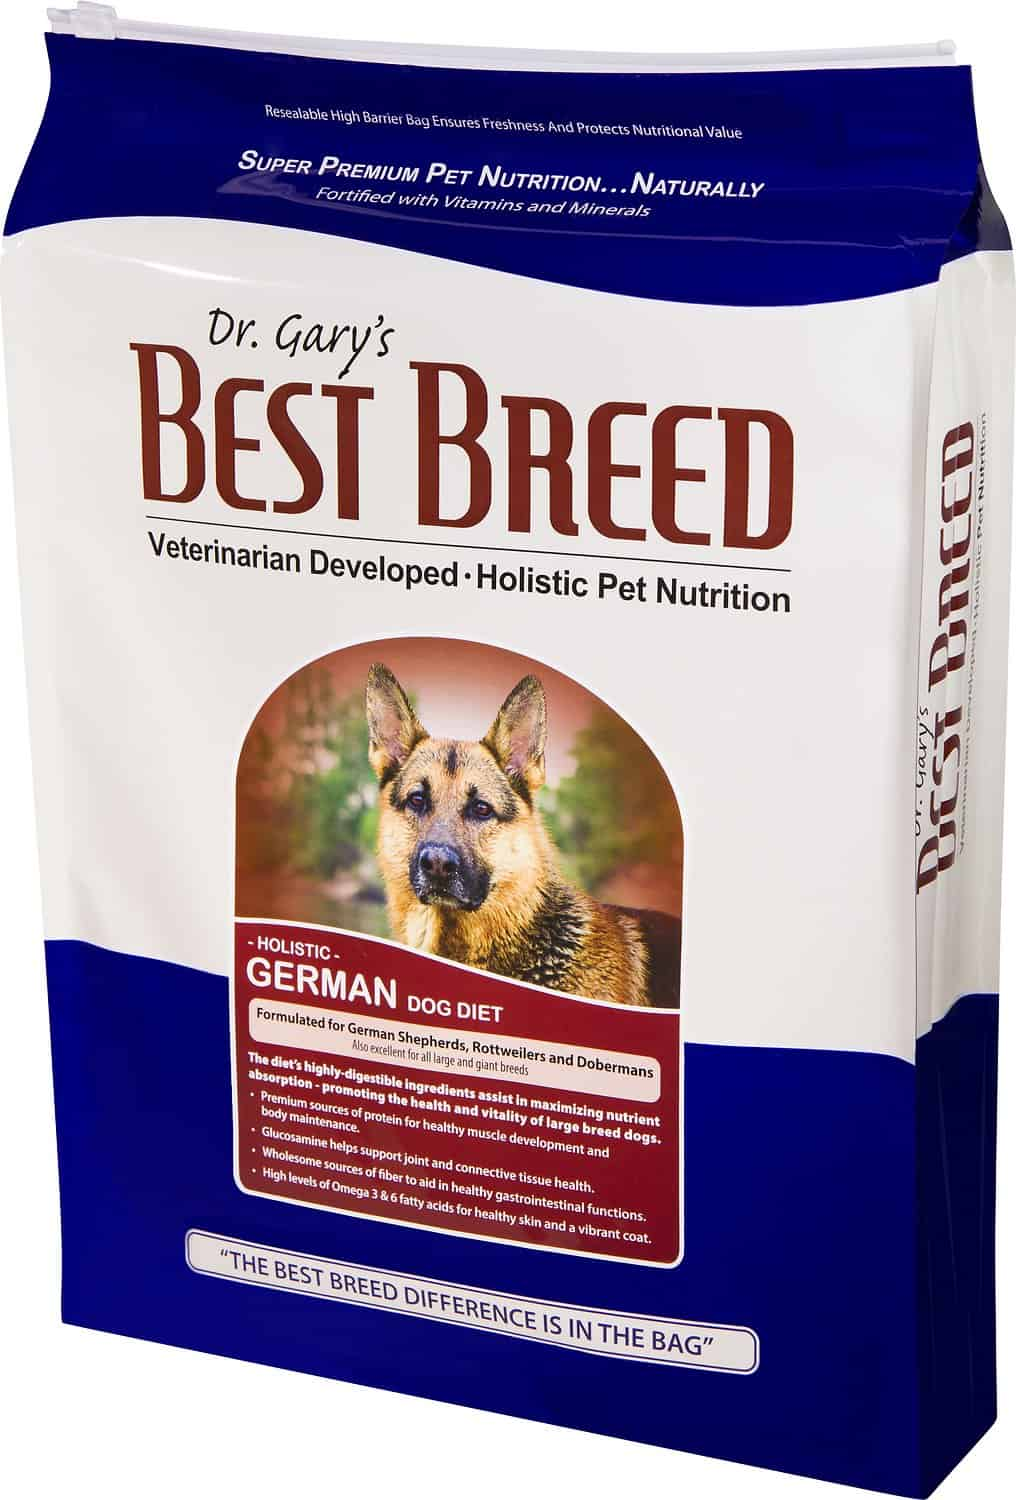 Dr. Gary's Best Breed Dog Food Review 2020: Best Holistic Pet Food? 15